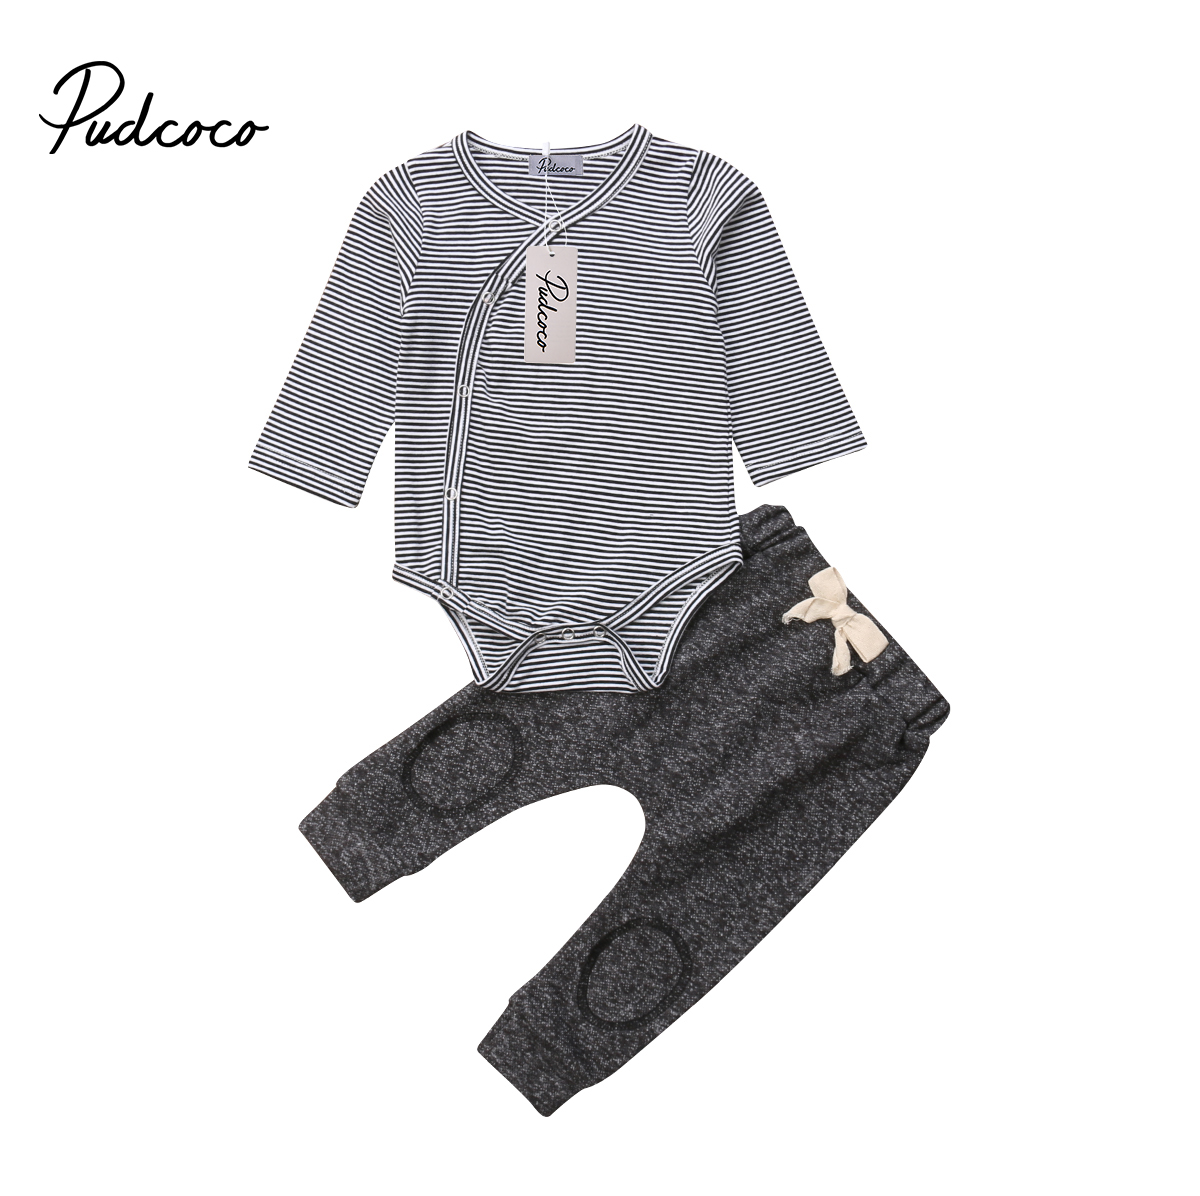 Soft Warm Terry Newborn Baby Boy Winter Autumn Clothing Set Stripe Romper Tops  Long Pants Outfits Clothes 0-24M